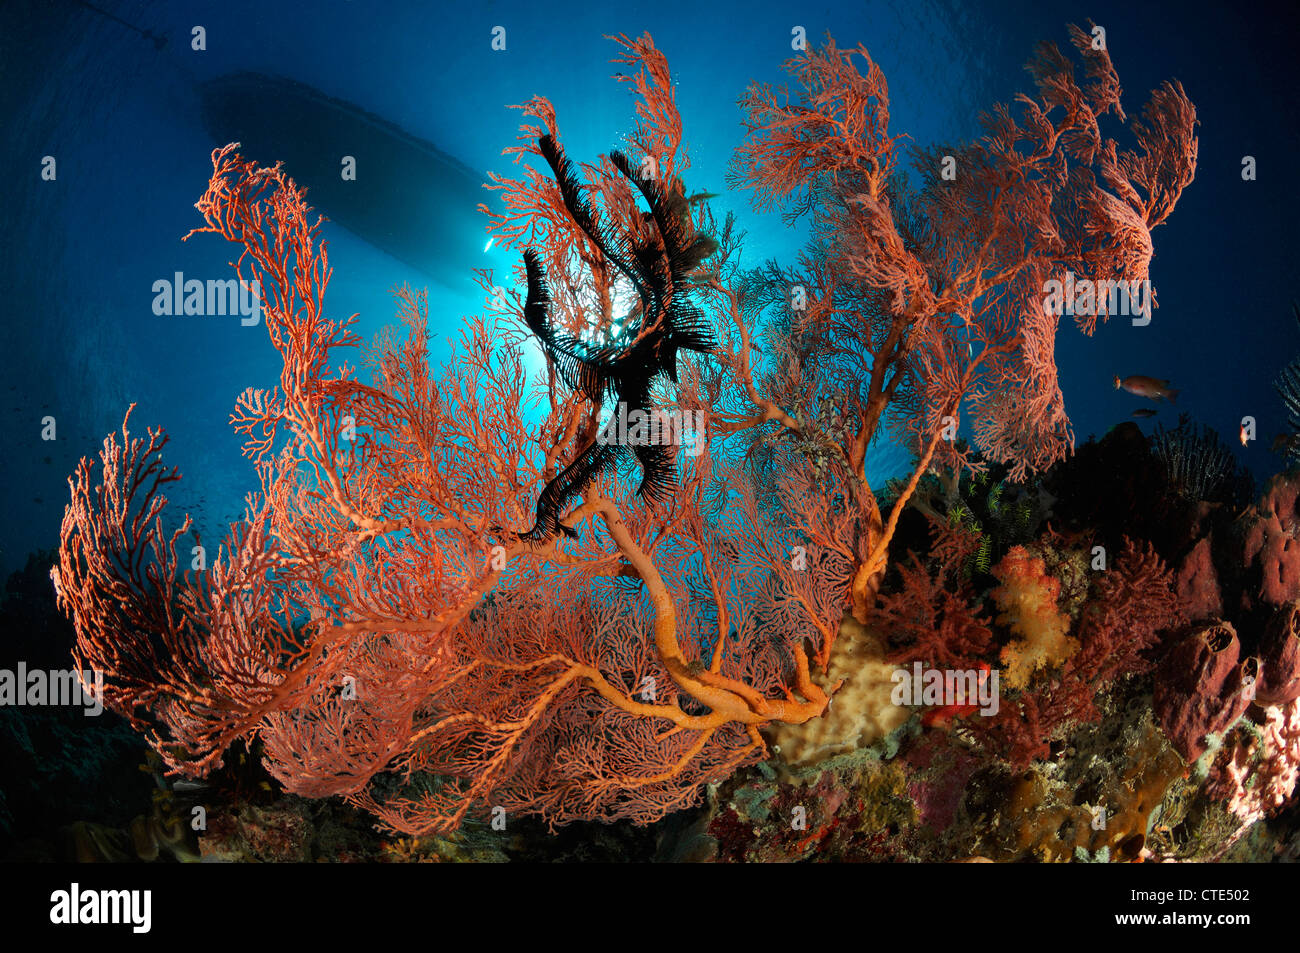 Seafan in Coral Reef, Melithaea sp., Alor, Indonesia - Stock Image